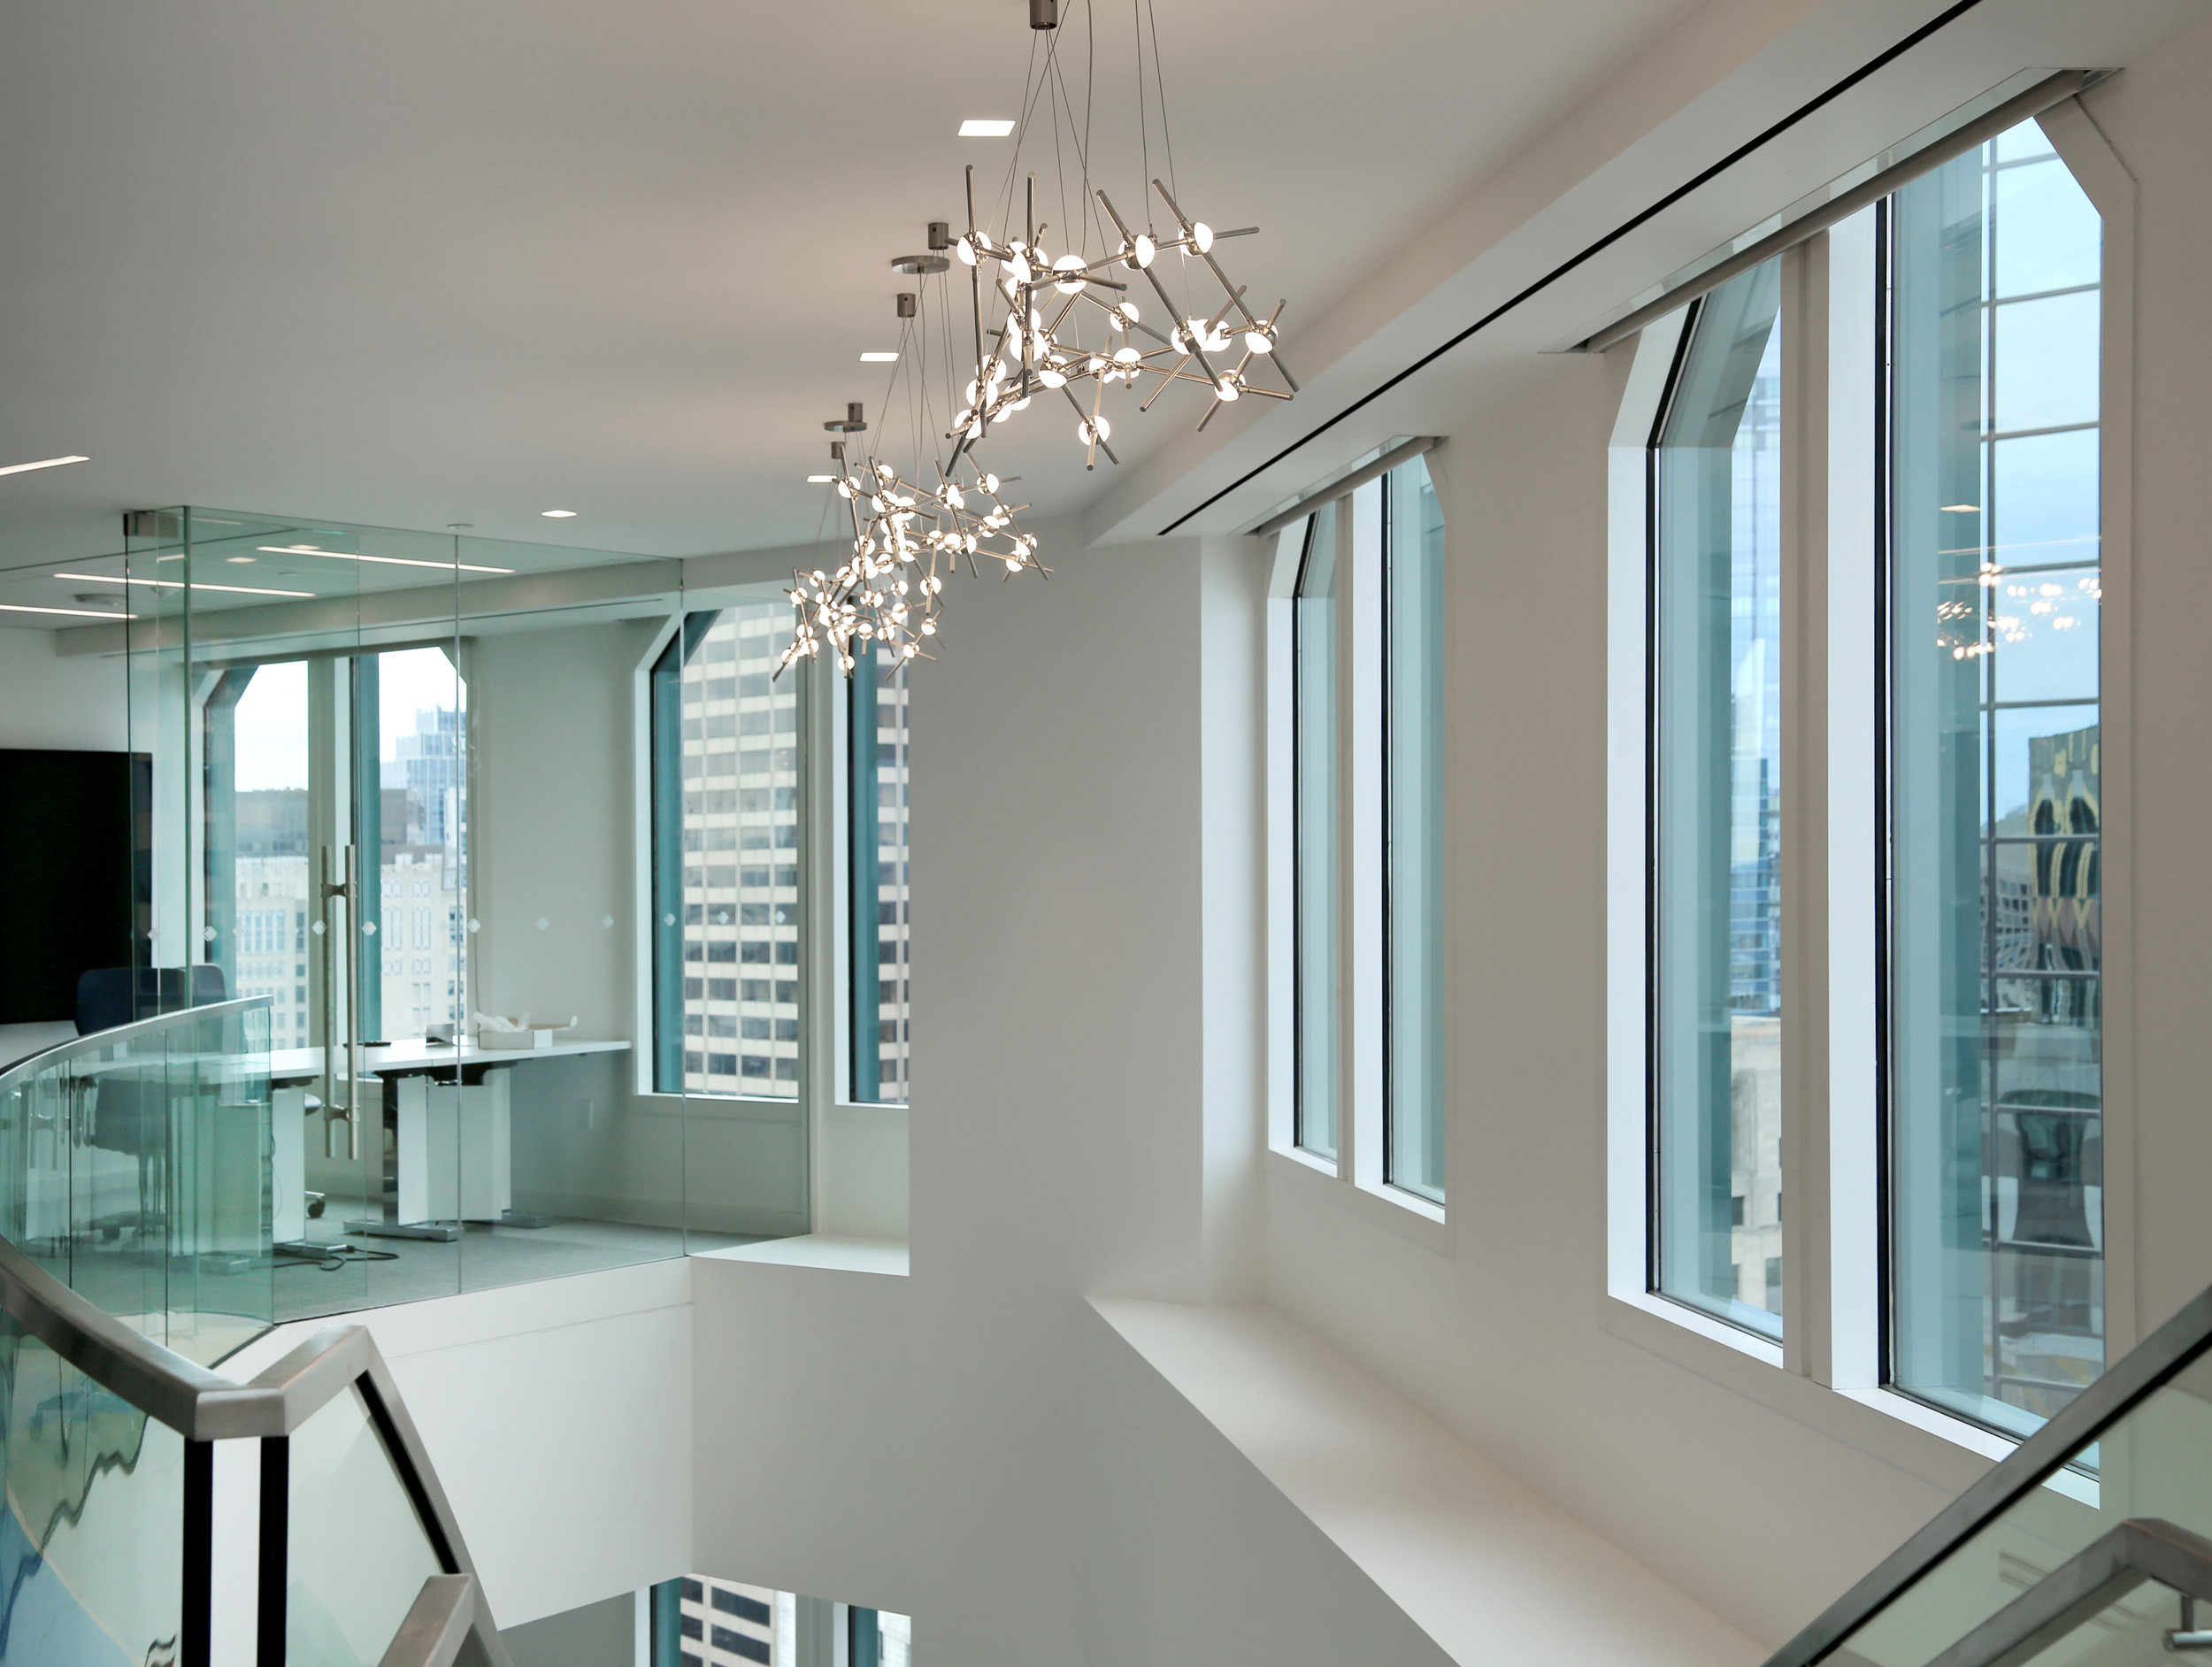 Illume Frameless Glass Conference Room Floating at Staircase - Spaceworks AI.jpg